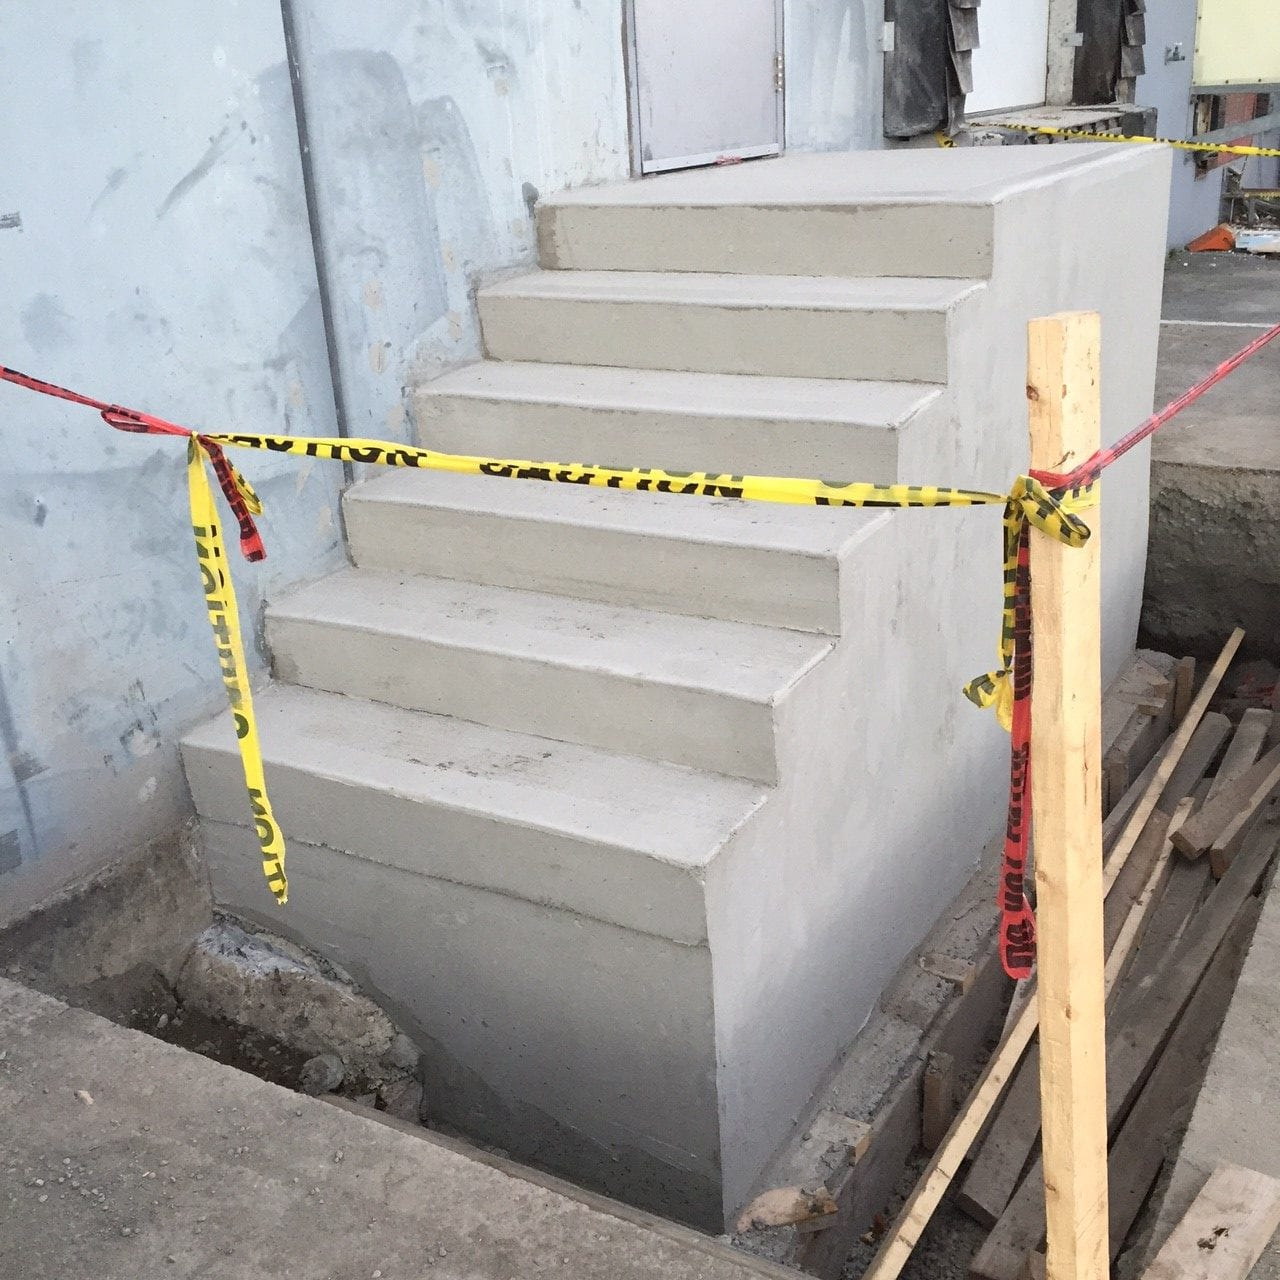 CommercialStair1BF